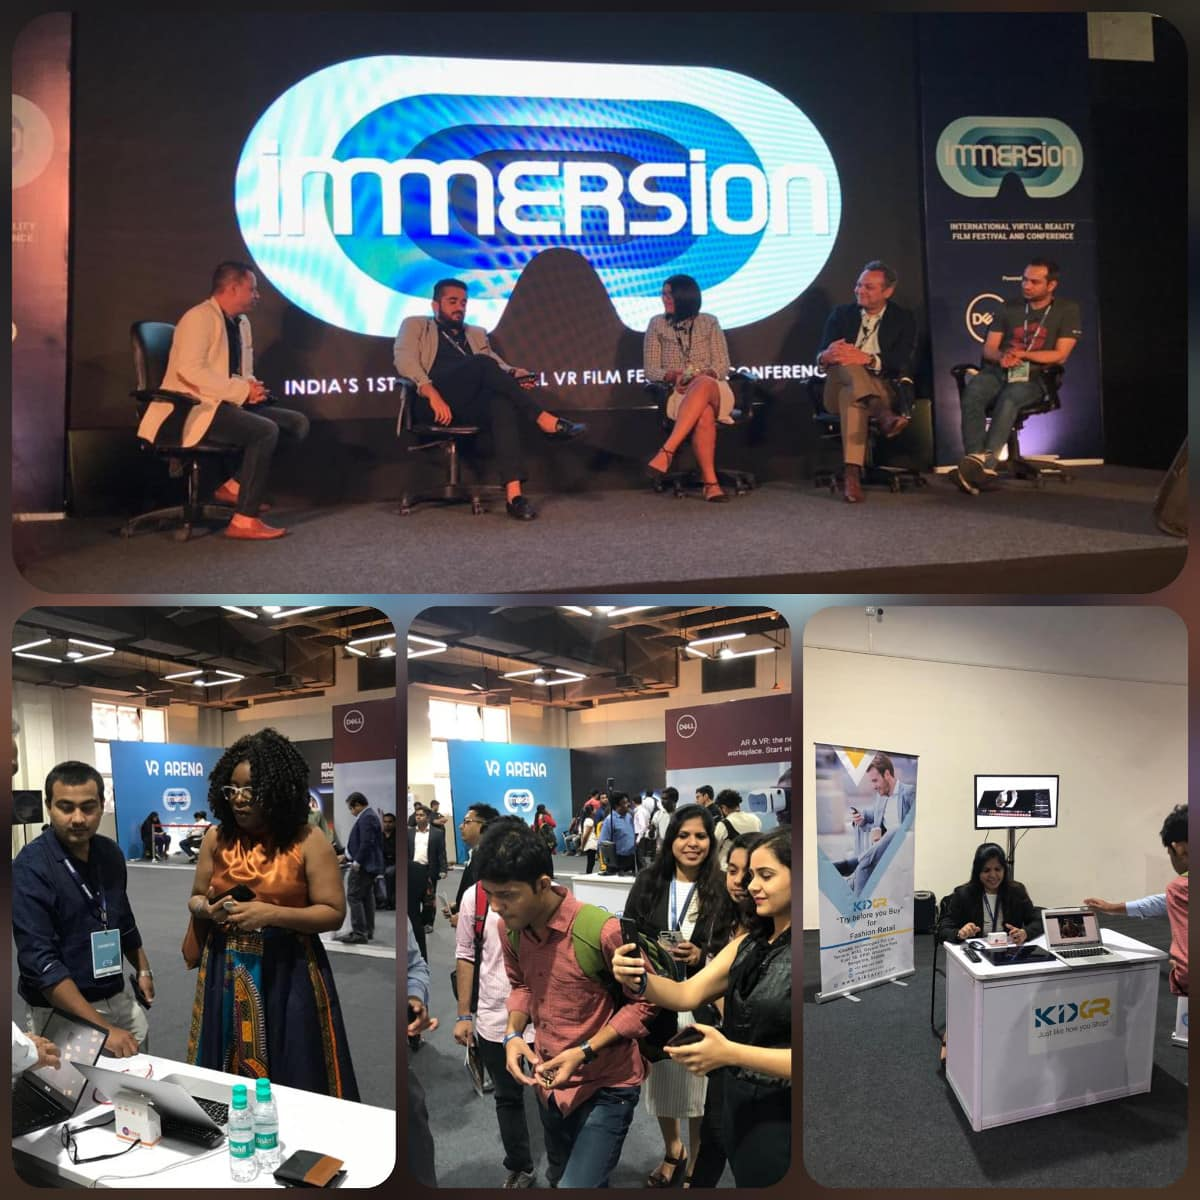 VR in India Immersion Conference Virtual Reality Emerging Technologoy Emerging Markets